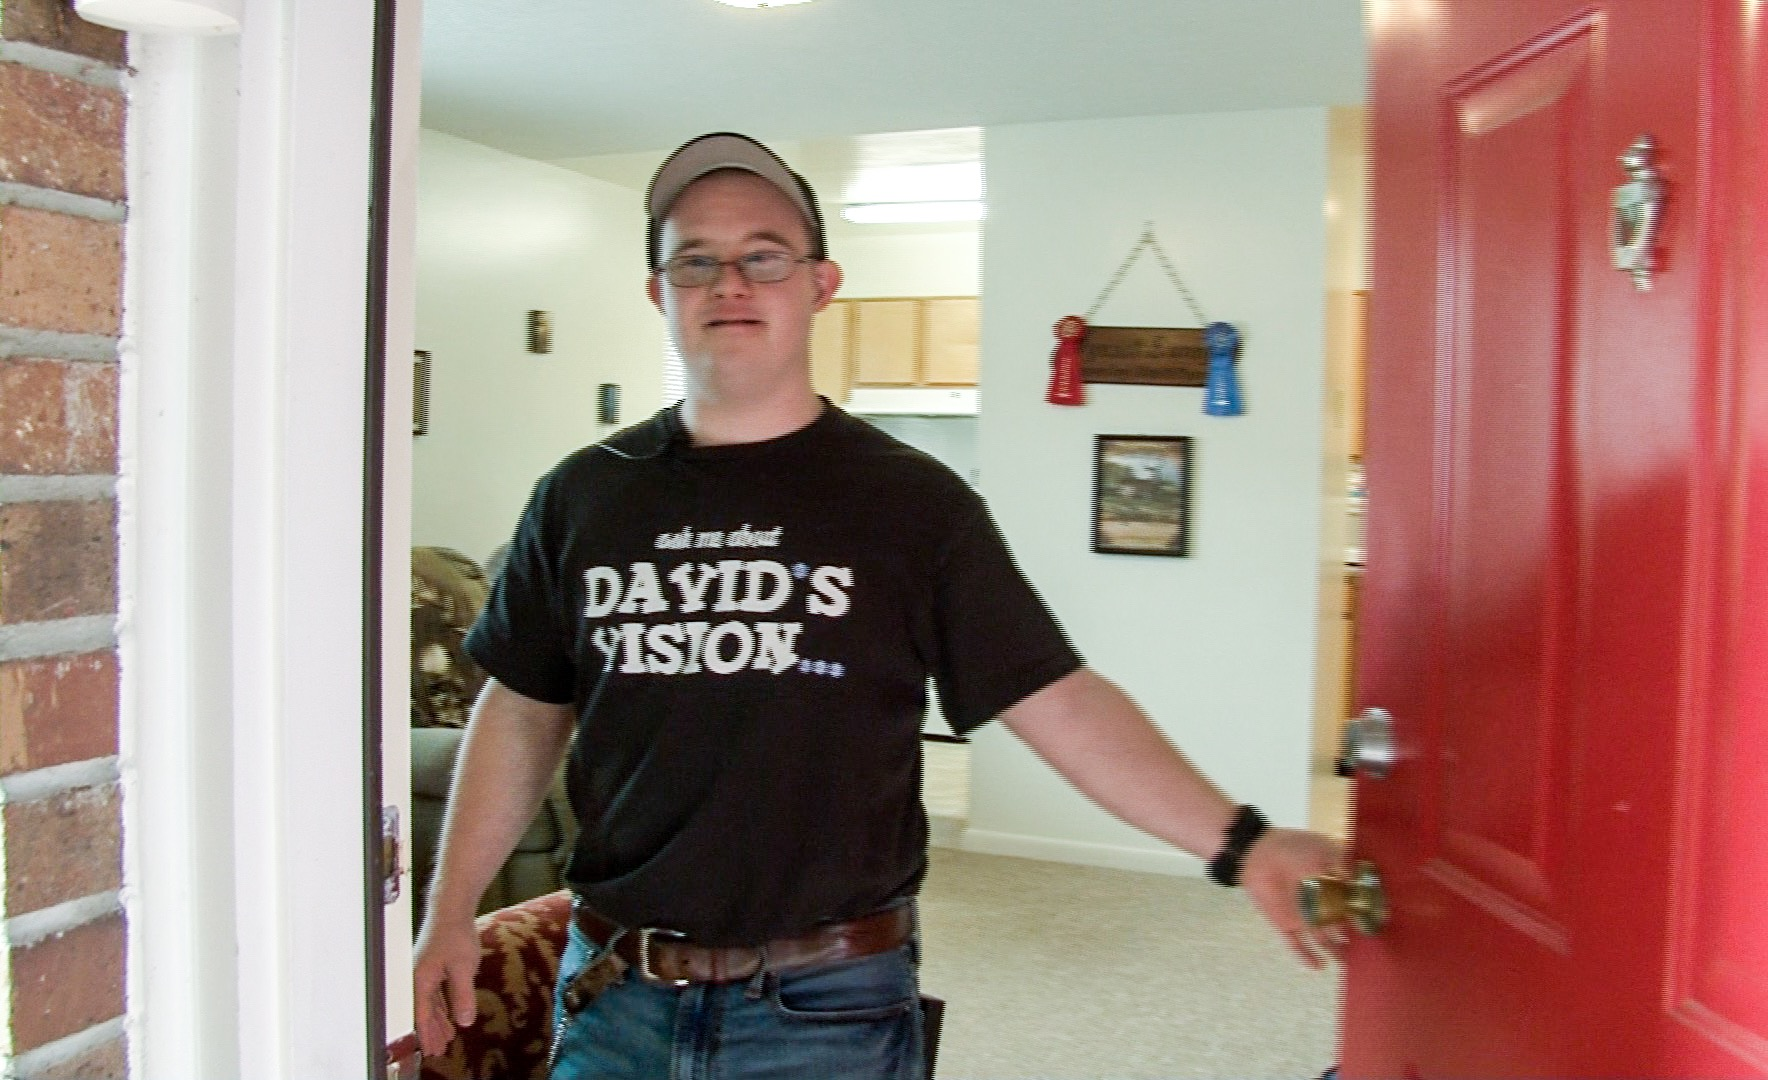 After graduation from an inclusive college program, David moved into a place of his own. His apartment features enabling technology to help him manage his daily life.